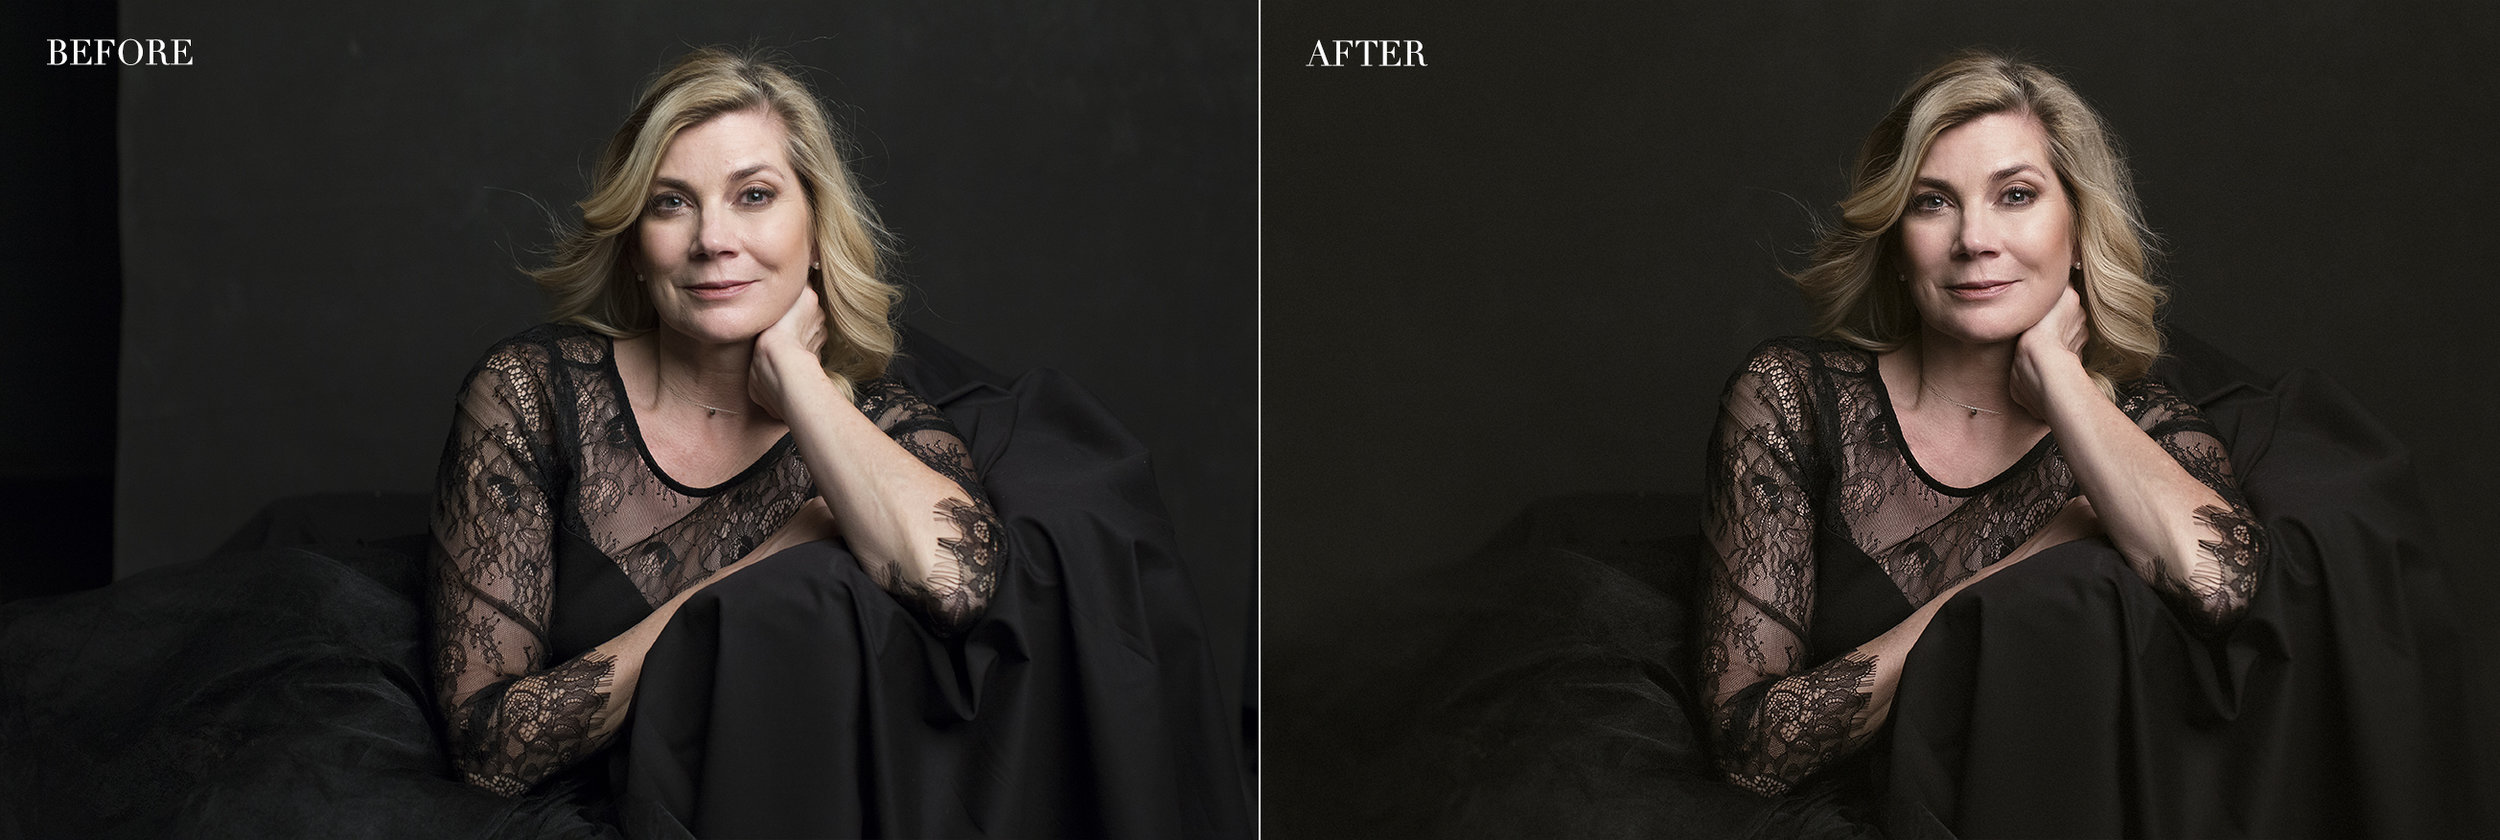 retouching-before-after-tiphani.jpg